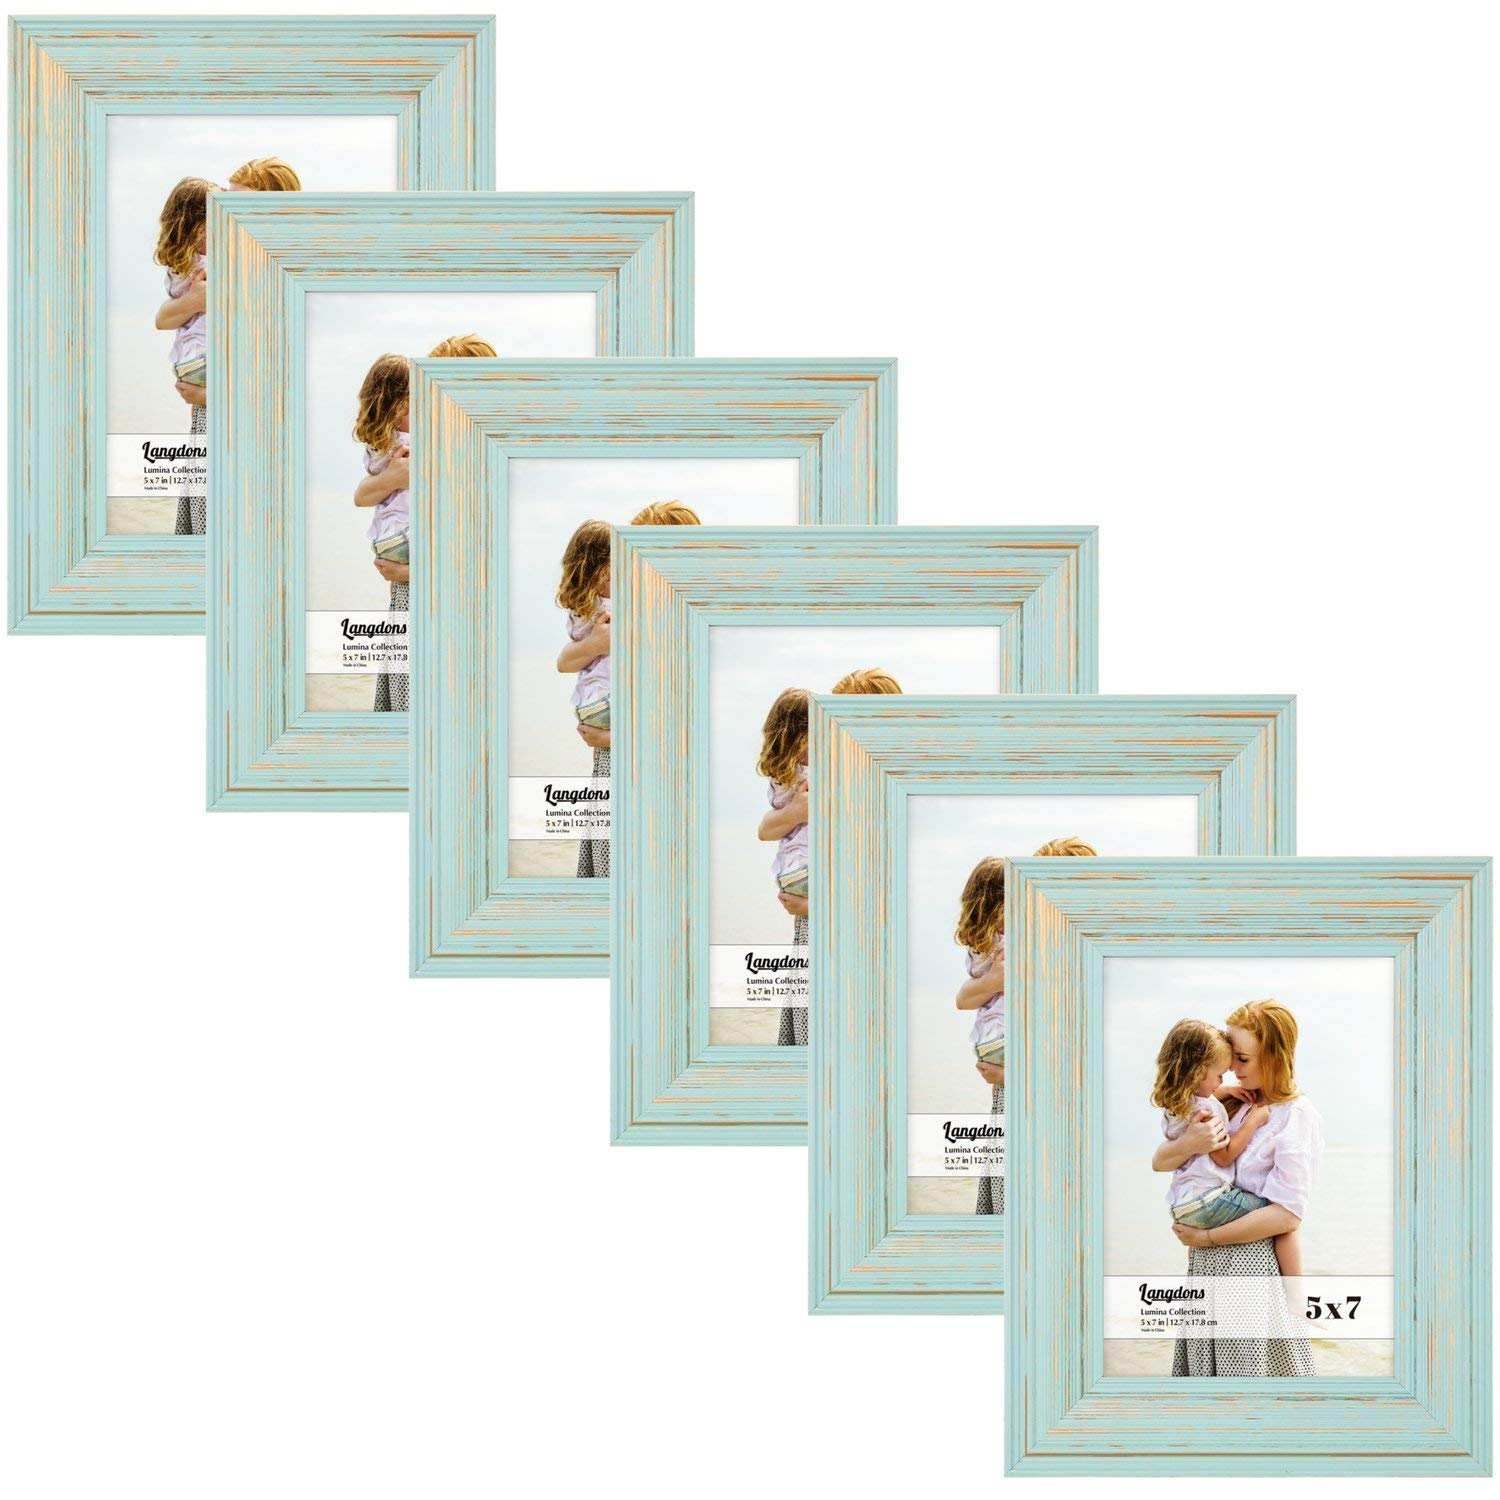 Langdons 5x7 Picture Frame Set (6-Pack, Eggshell Blue) Solid Wood Photo Picture Frames 5x7, Wall Hanging or Table Top, Display Picture Frame 5x7 Vertically or 7x5 Horizontally, Lumina Series